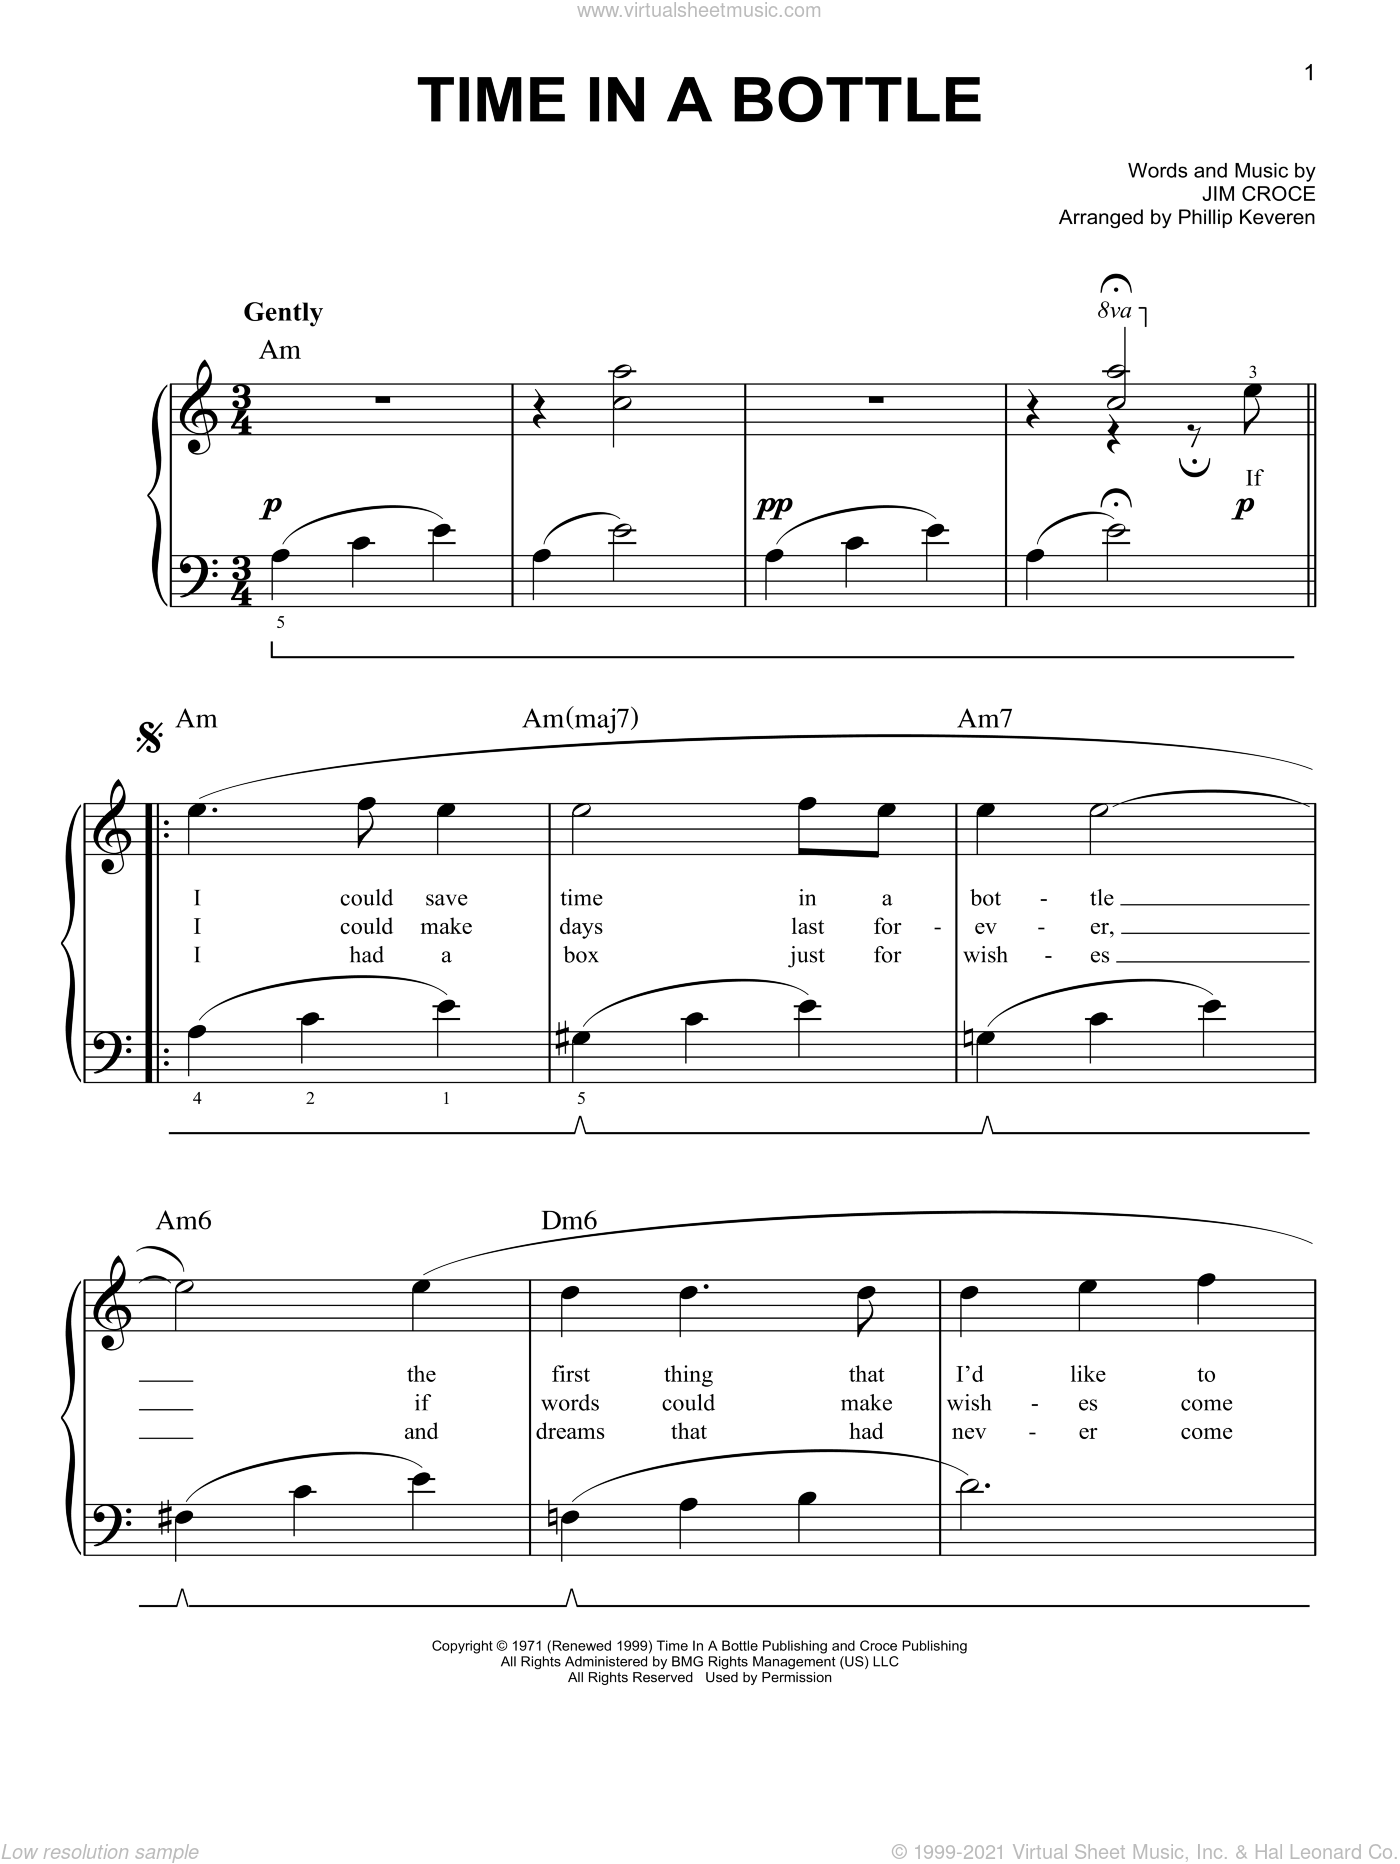 Time In A Bottle sheet music for piano solo by Jim Croce, easy skill level